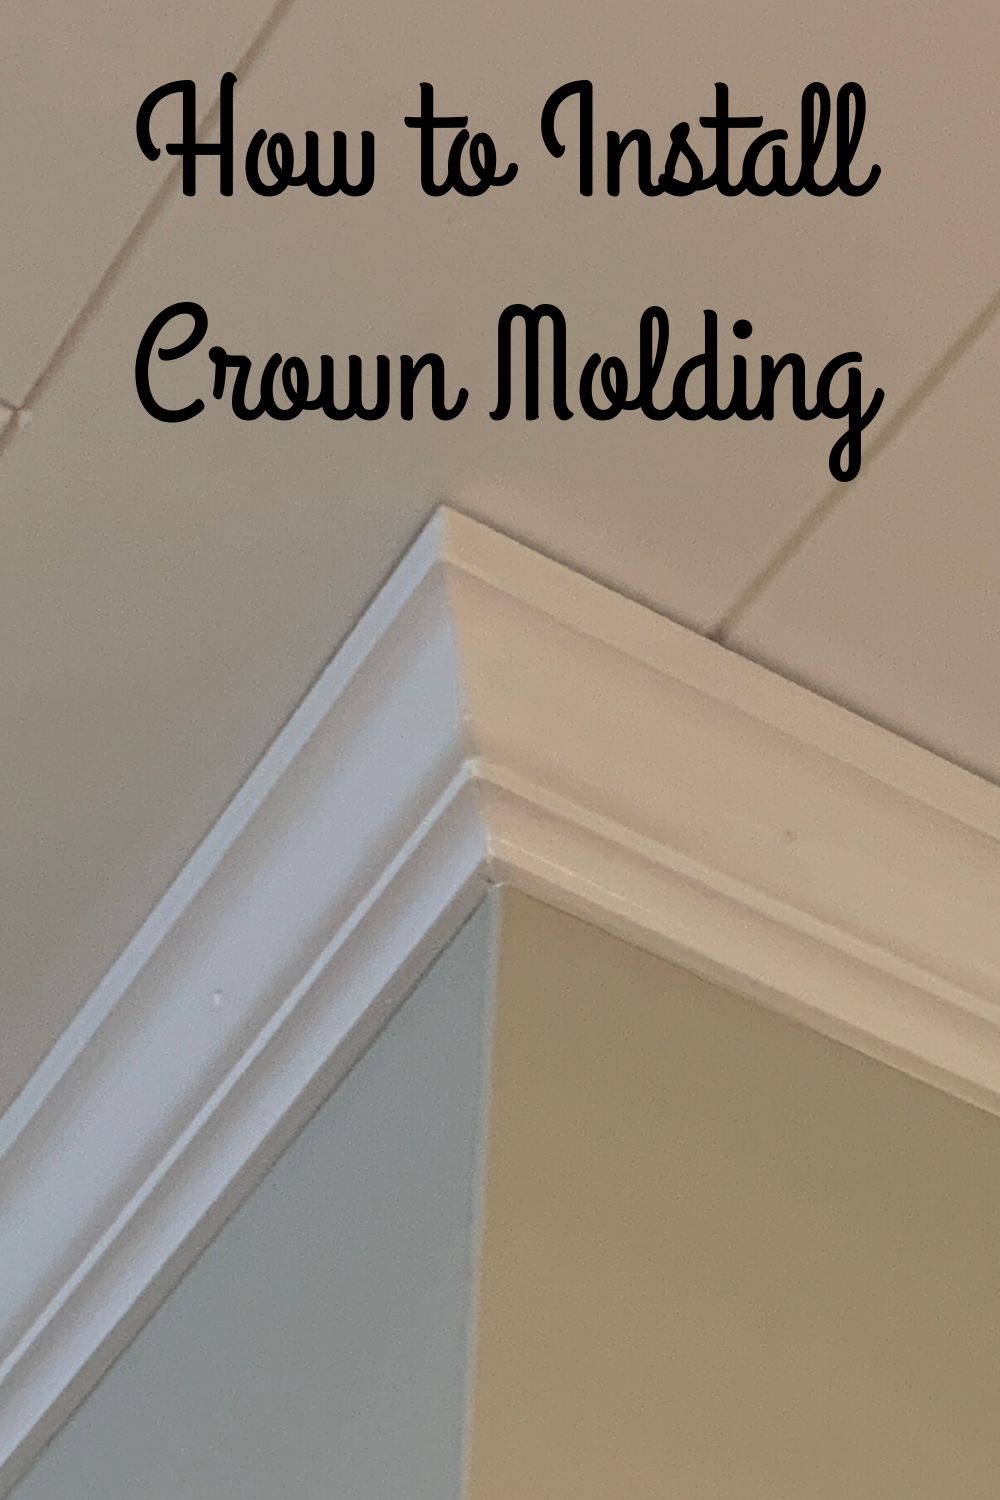 How To Install Crown Molding In 2020 Crown Molding Crown Molding In Bedroom Crown Molding Kitchen